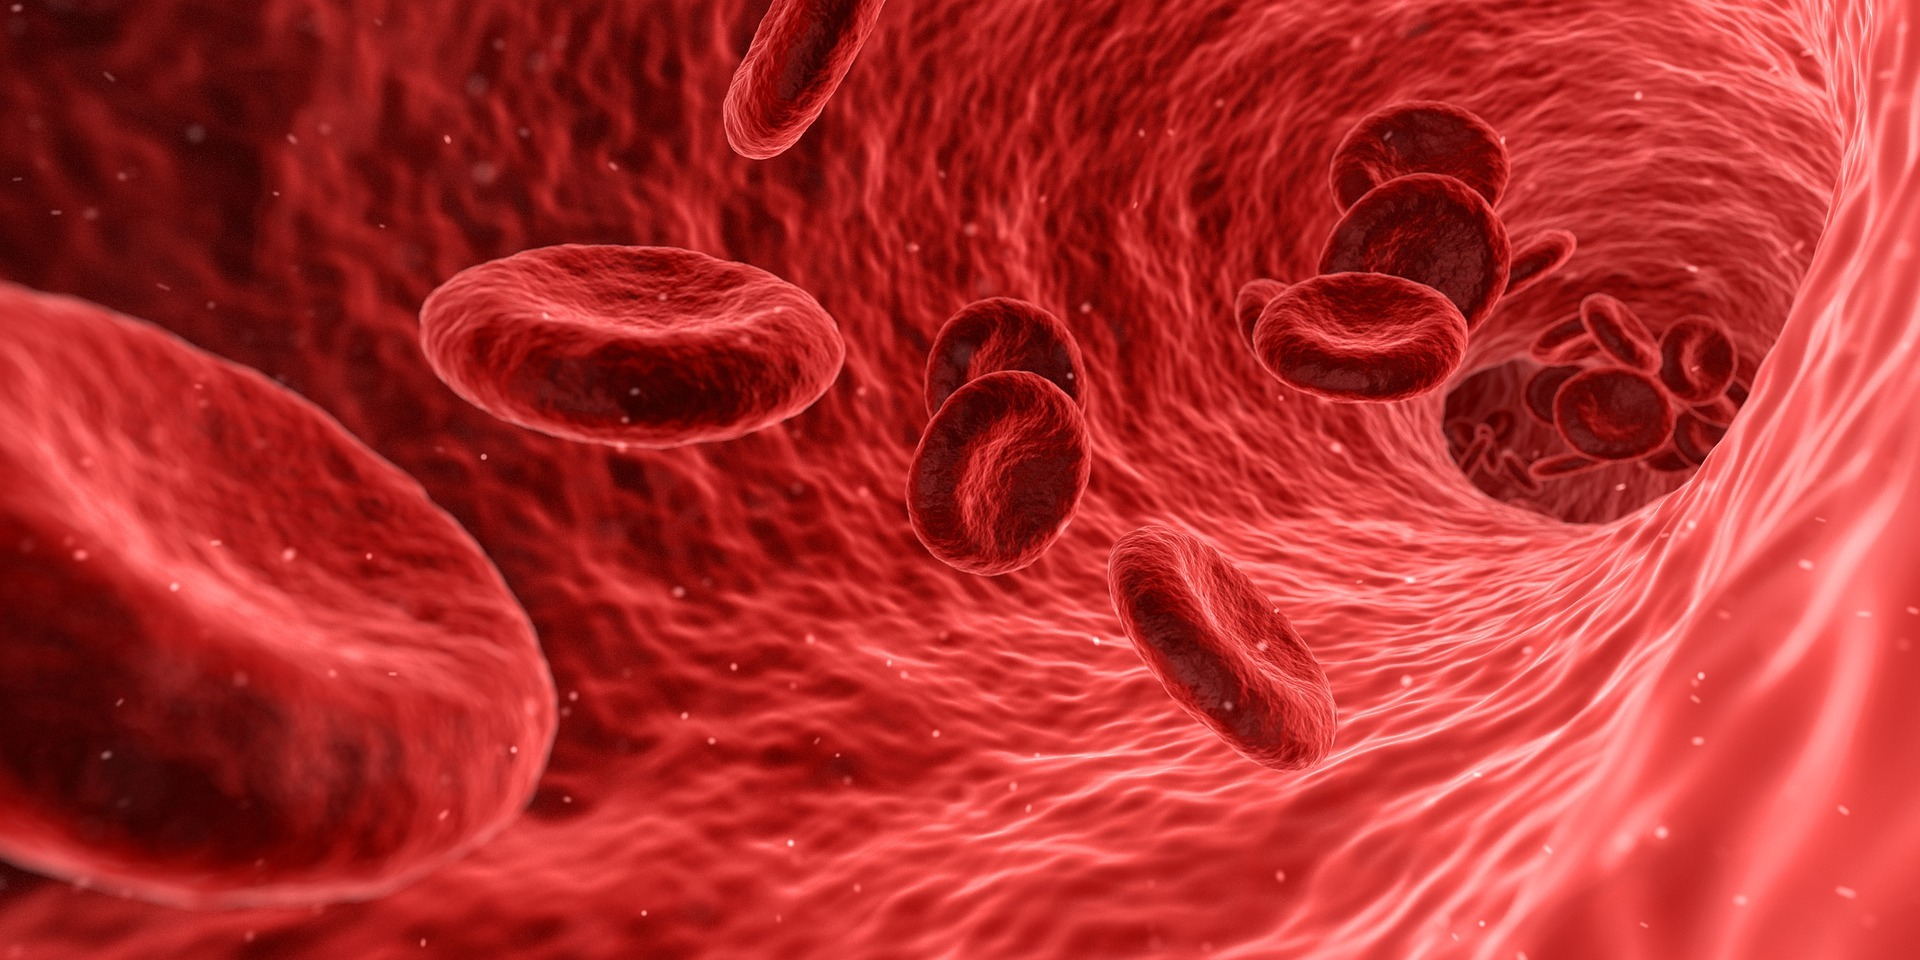 Black people can be prone to suffer with disorders such as sickle cell